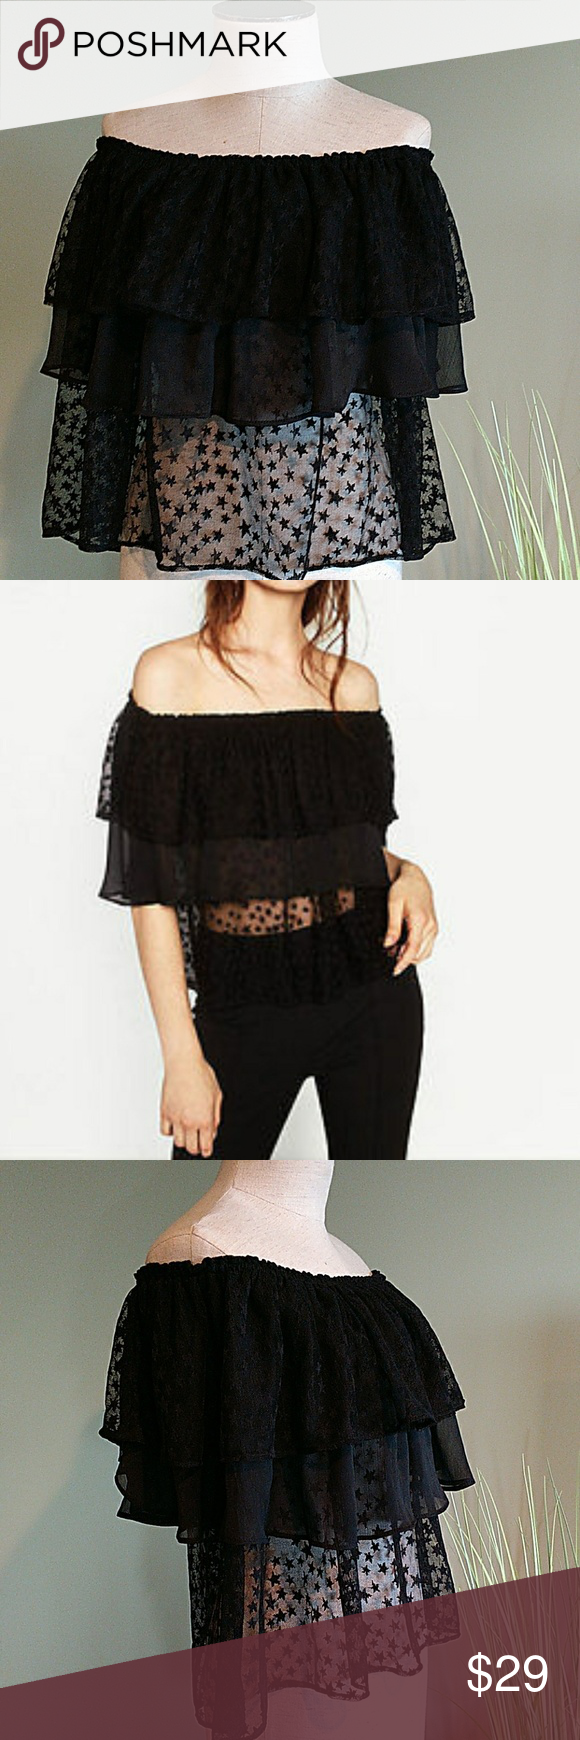 de7d81112b55ba Zara Basic Off Shoulder Layered Ruffle Top Off the shoulder style. Crop  silhouette